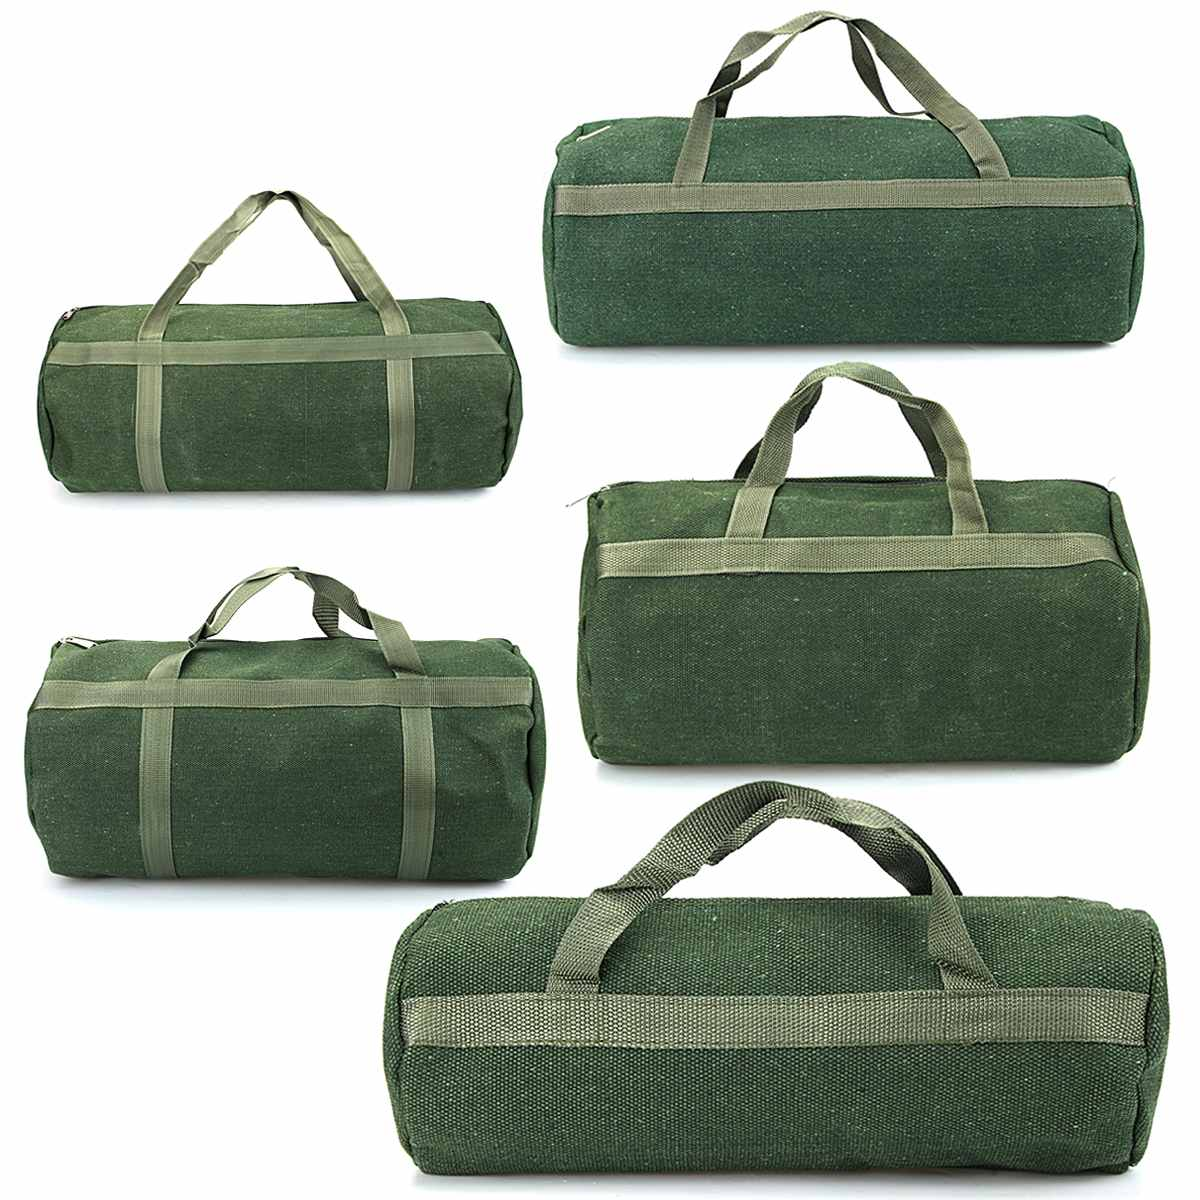 Canvas Zipper Tool Bag Portable Mechanics Tool Storage Bag With Handle Wrenches Screwdrivers Hand Tool Electrician Shoulder Bag